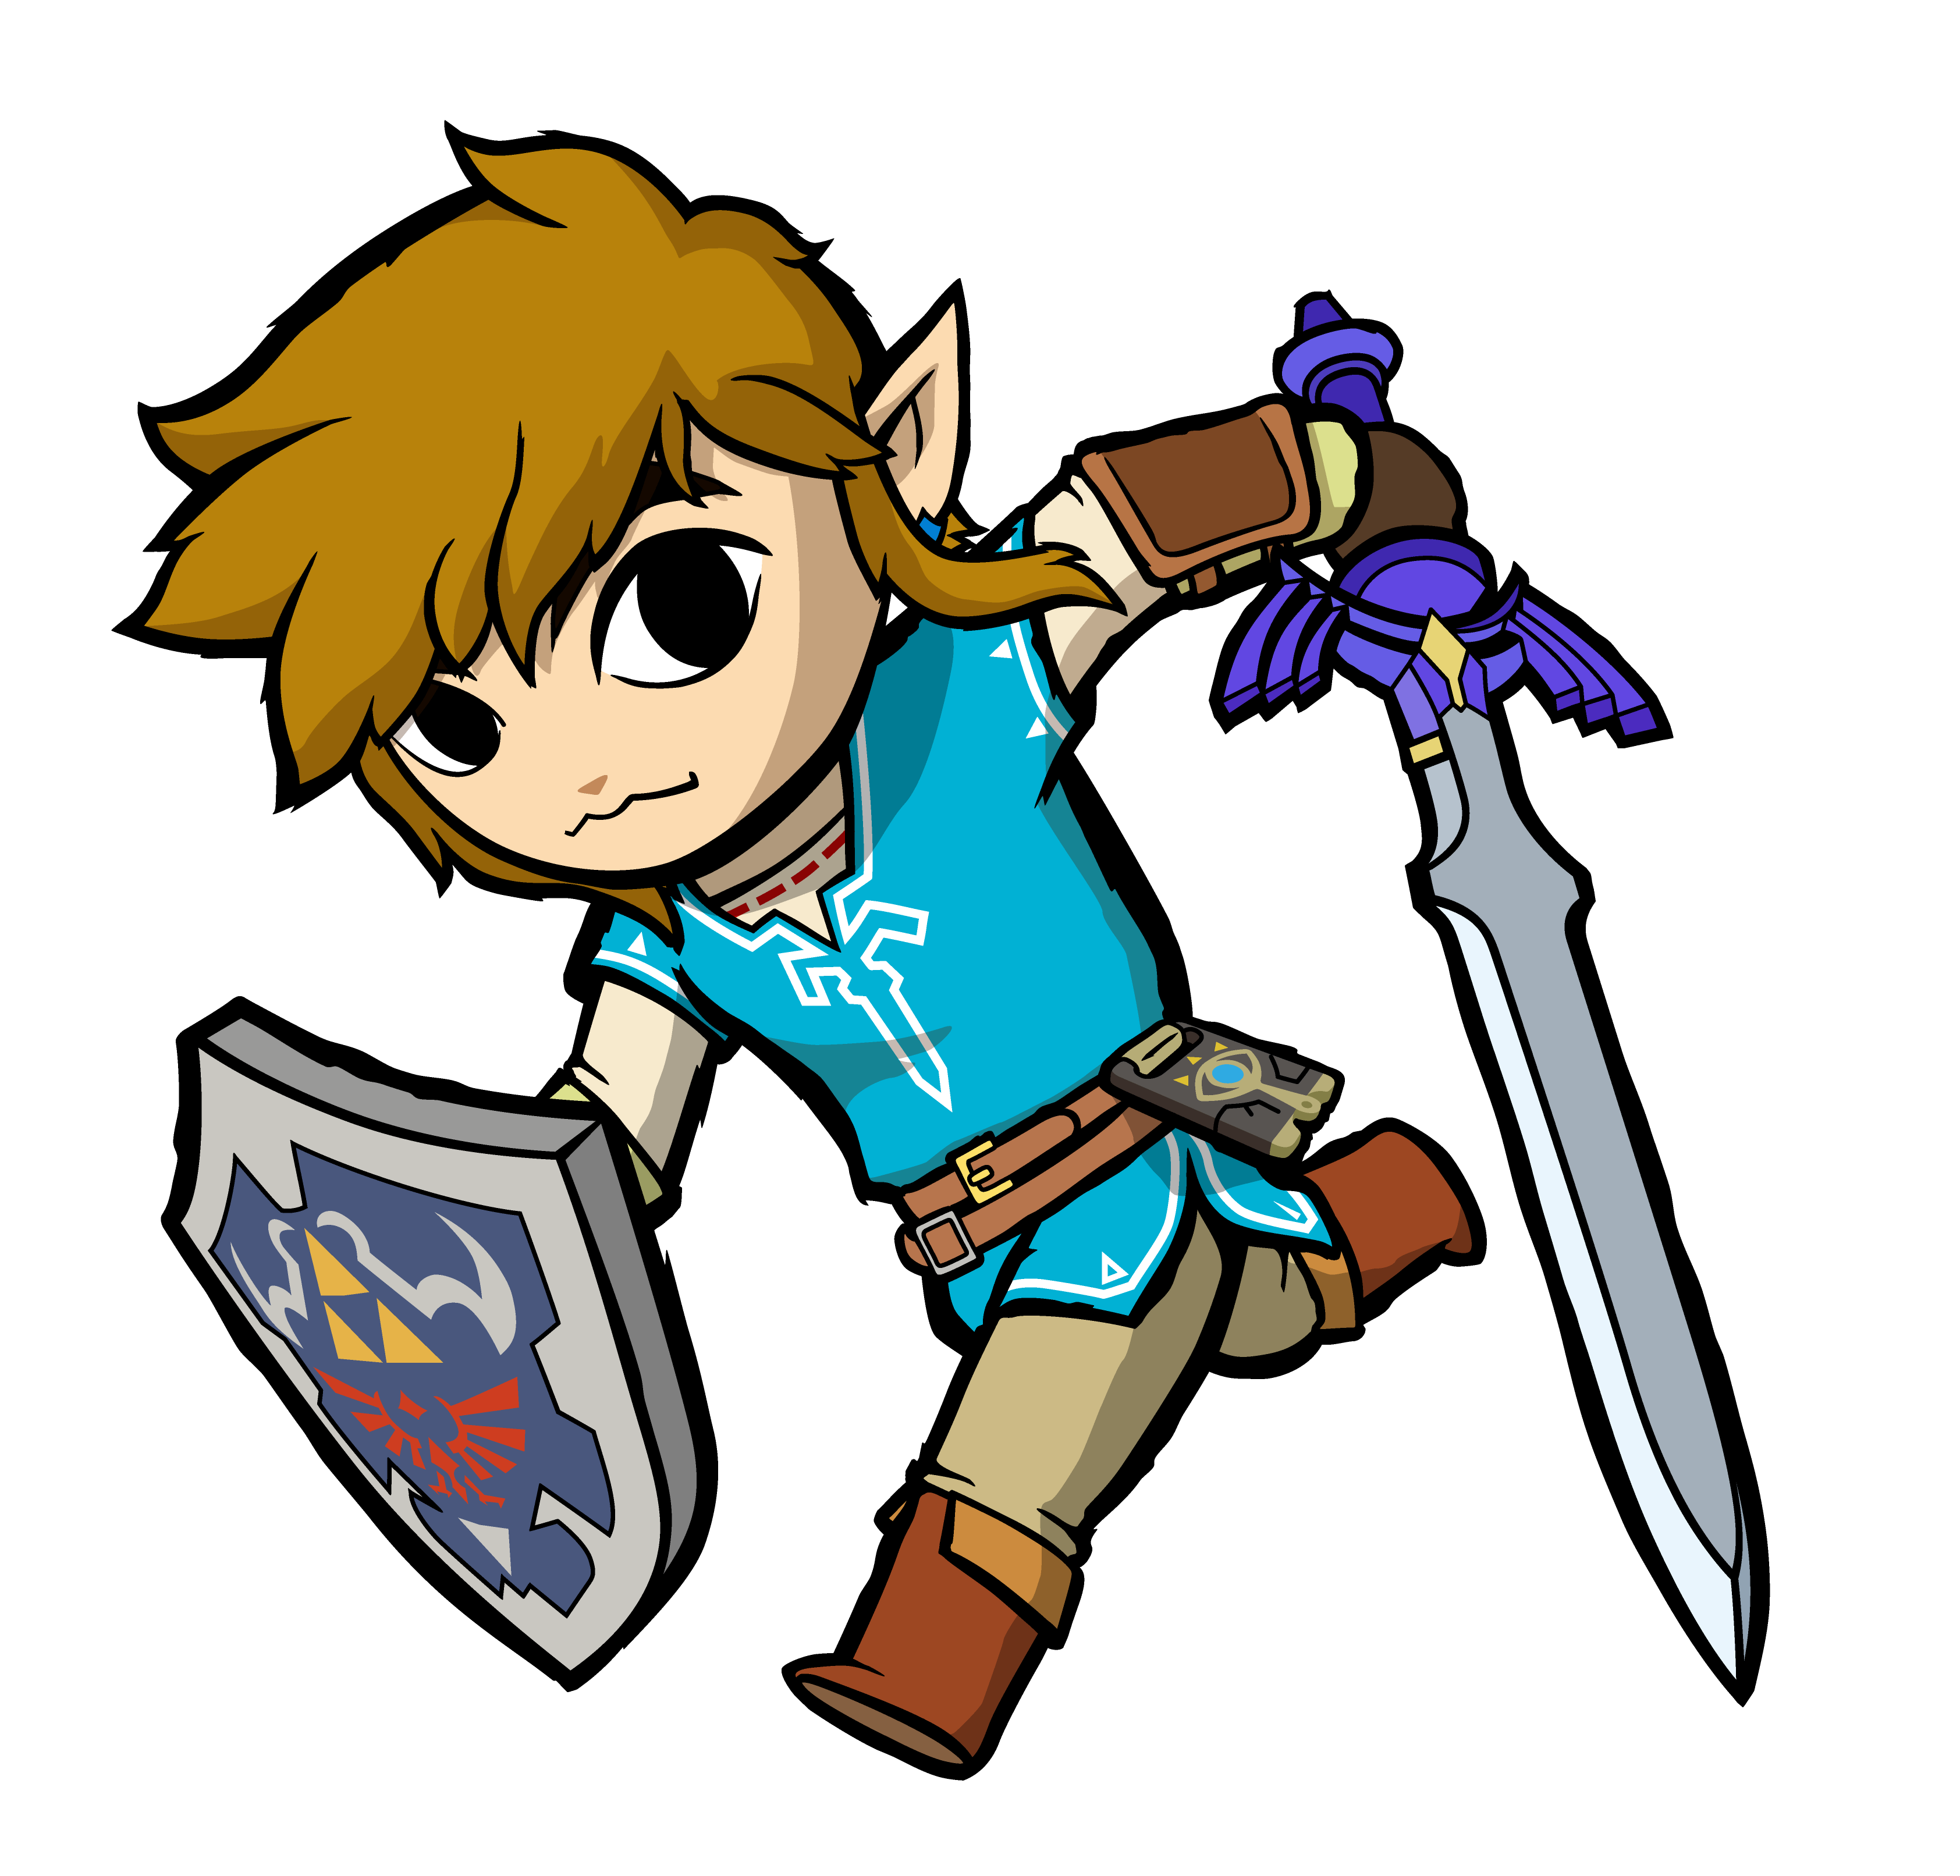 Toon Link In Breath Of The Wild Legend Of Zelda Tattoos Legend Of Zelda Breath Of The Wild